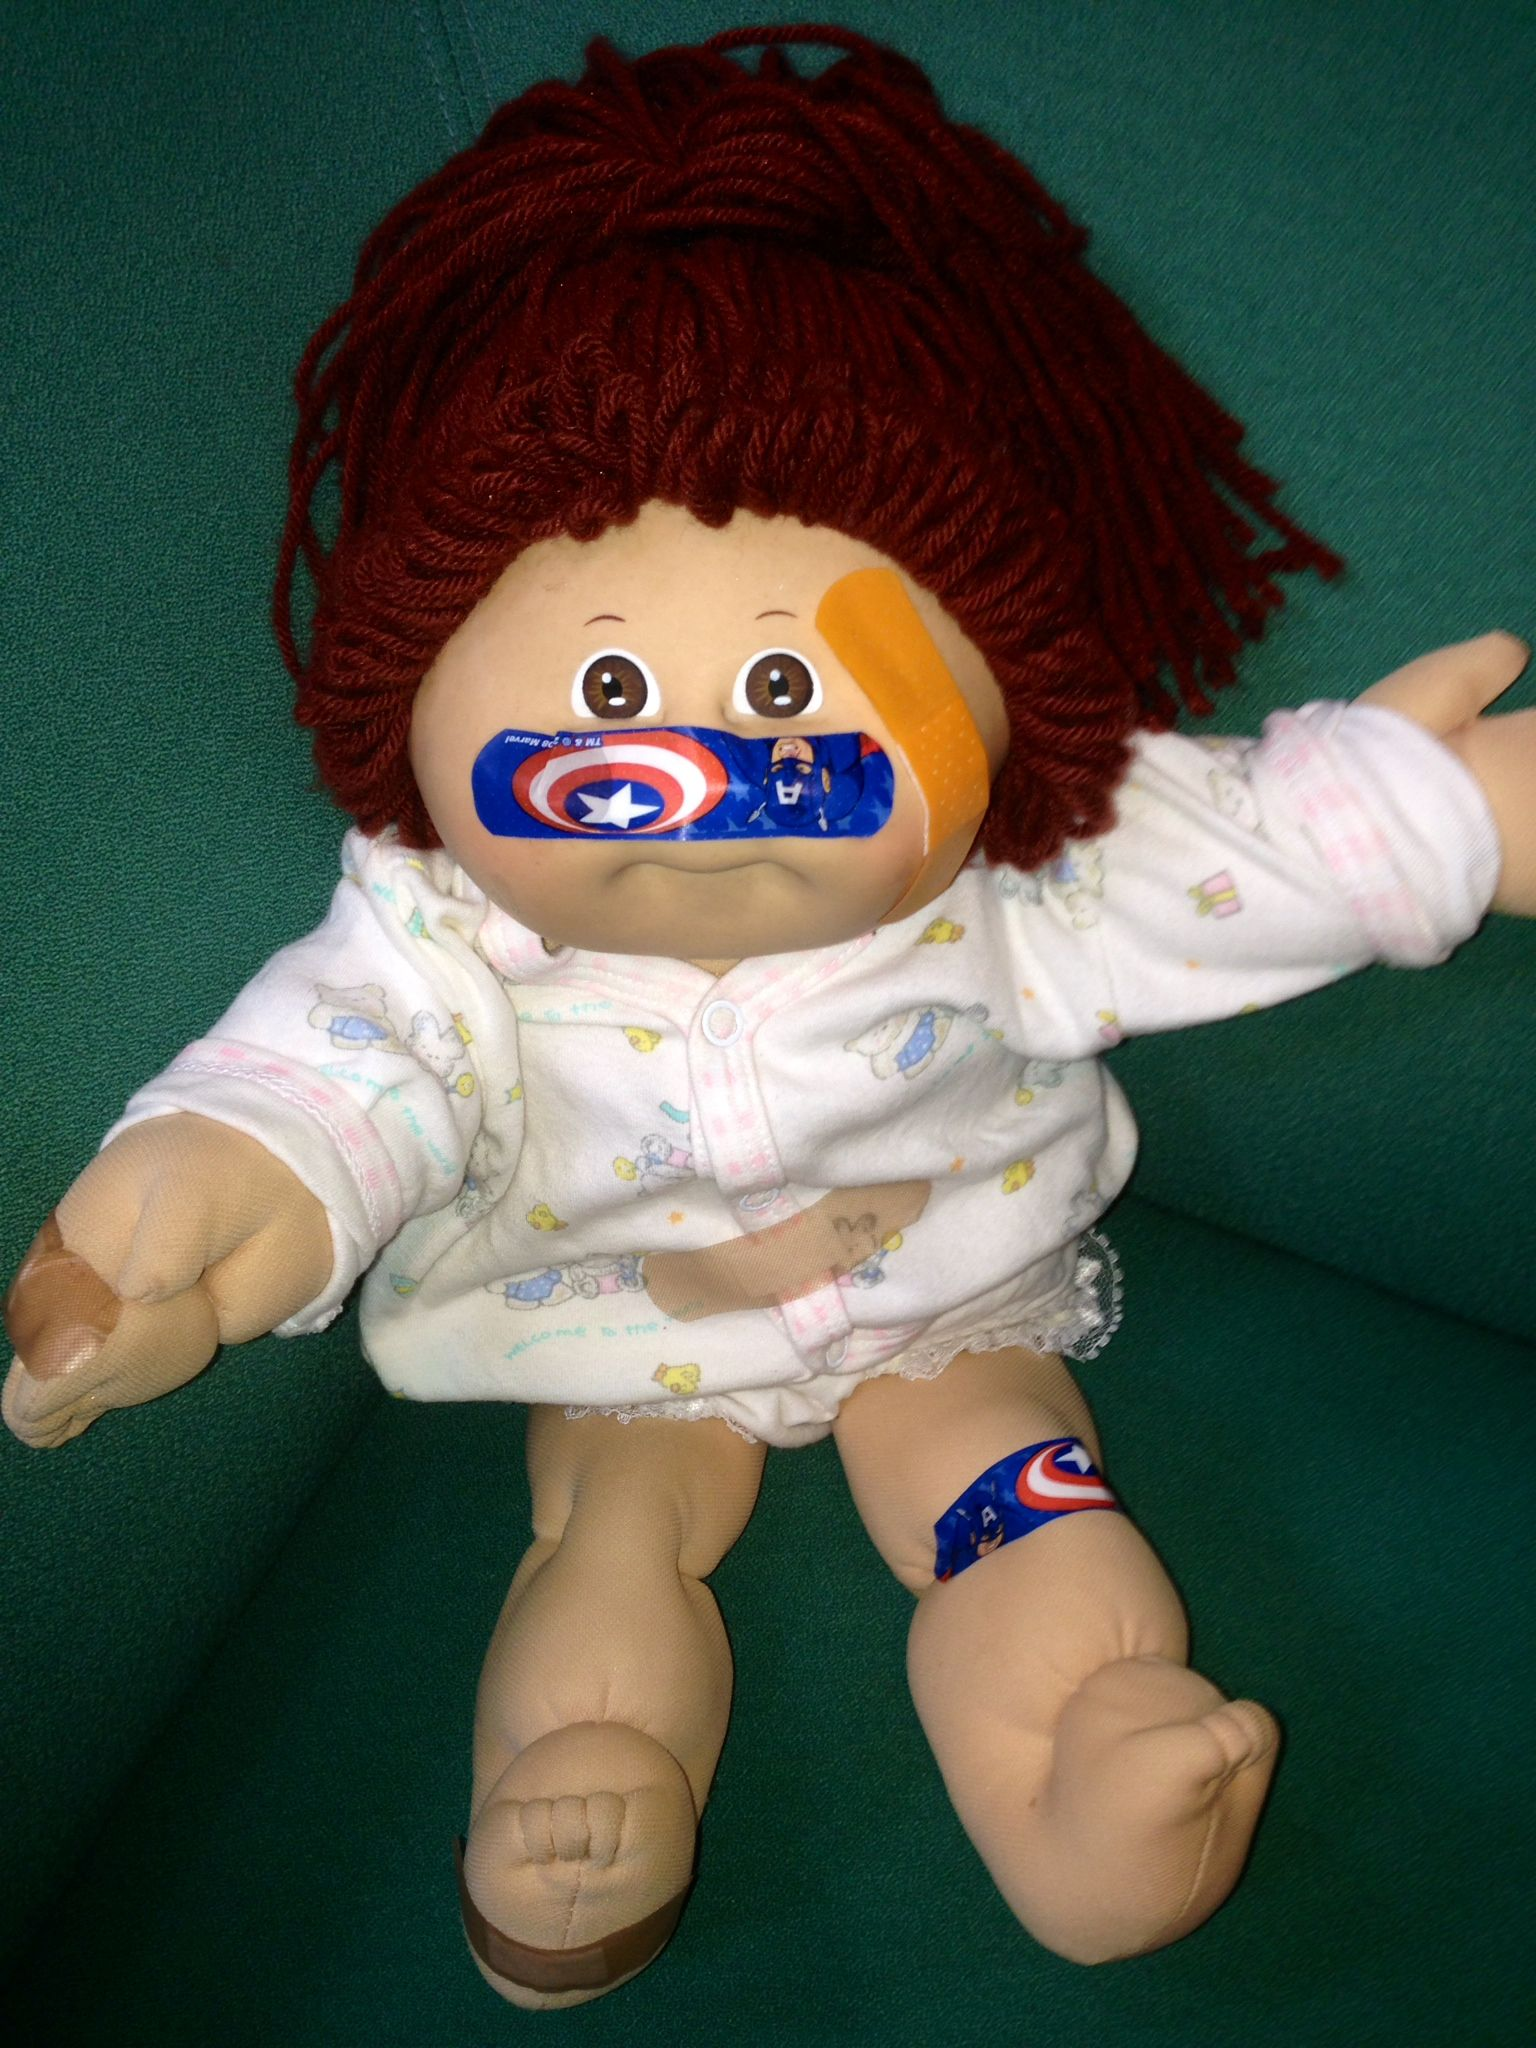 Teach Body Parts In Spanish Students Put Band Aids On The Doll For Reinforcement Of Las Partes